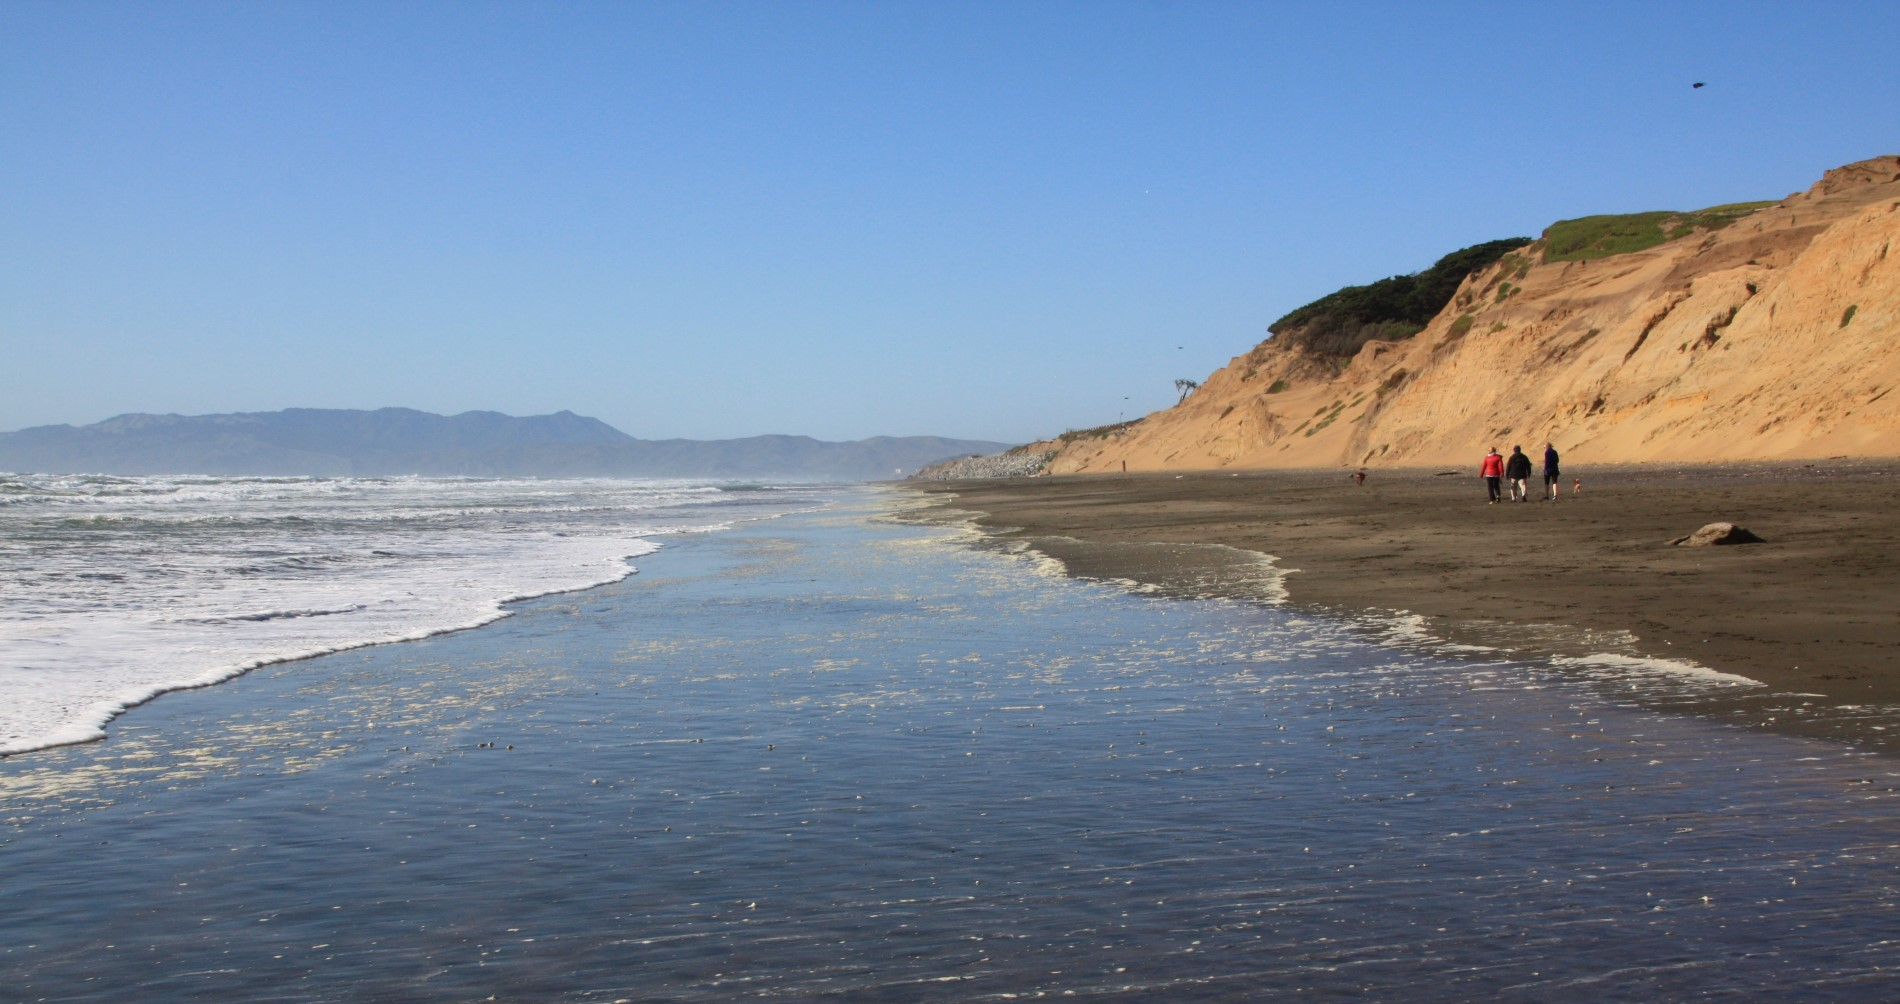 Best beaches near oakland ca california beaches for Best beach near la